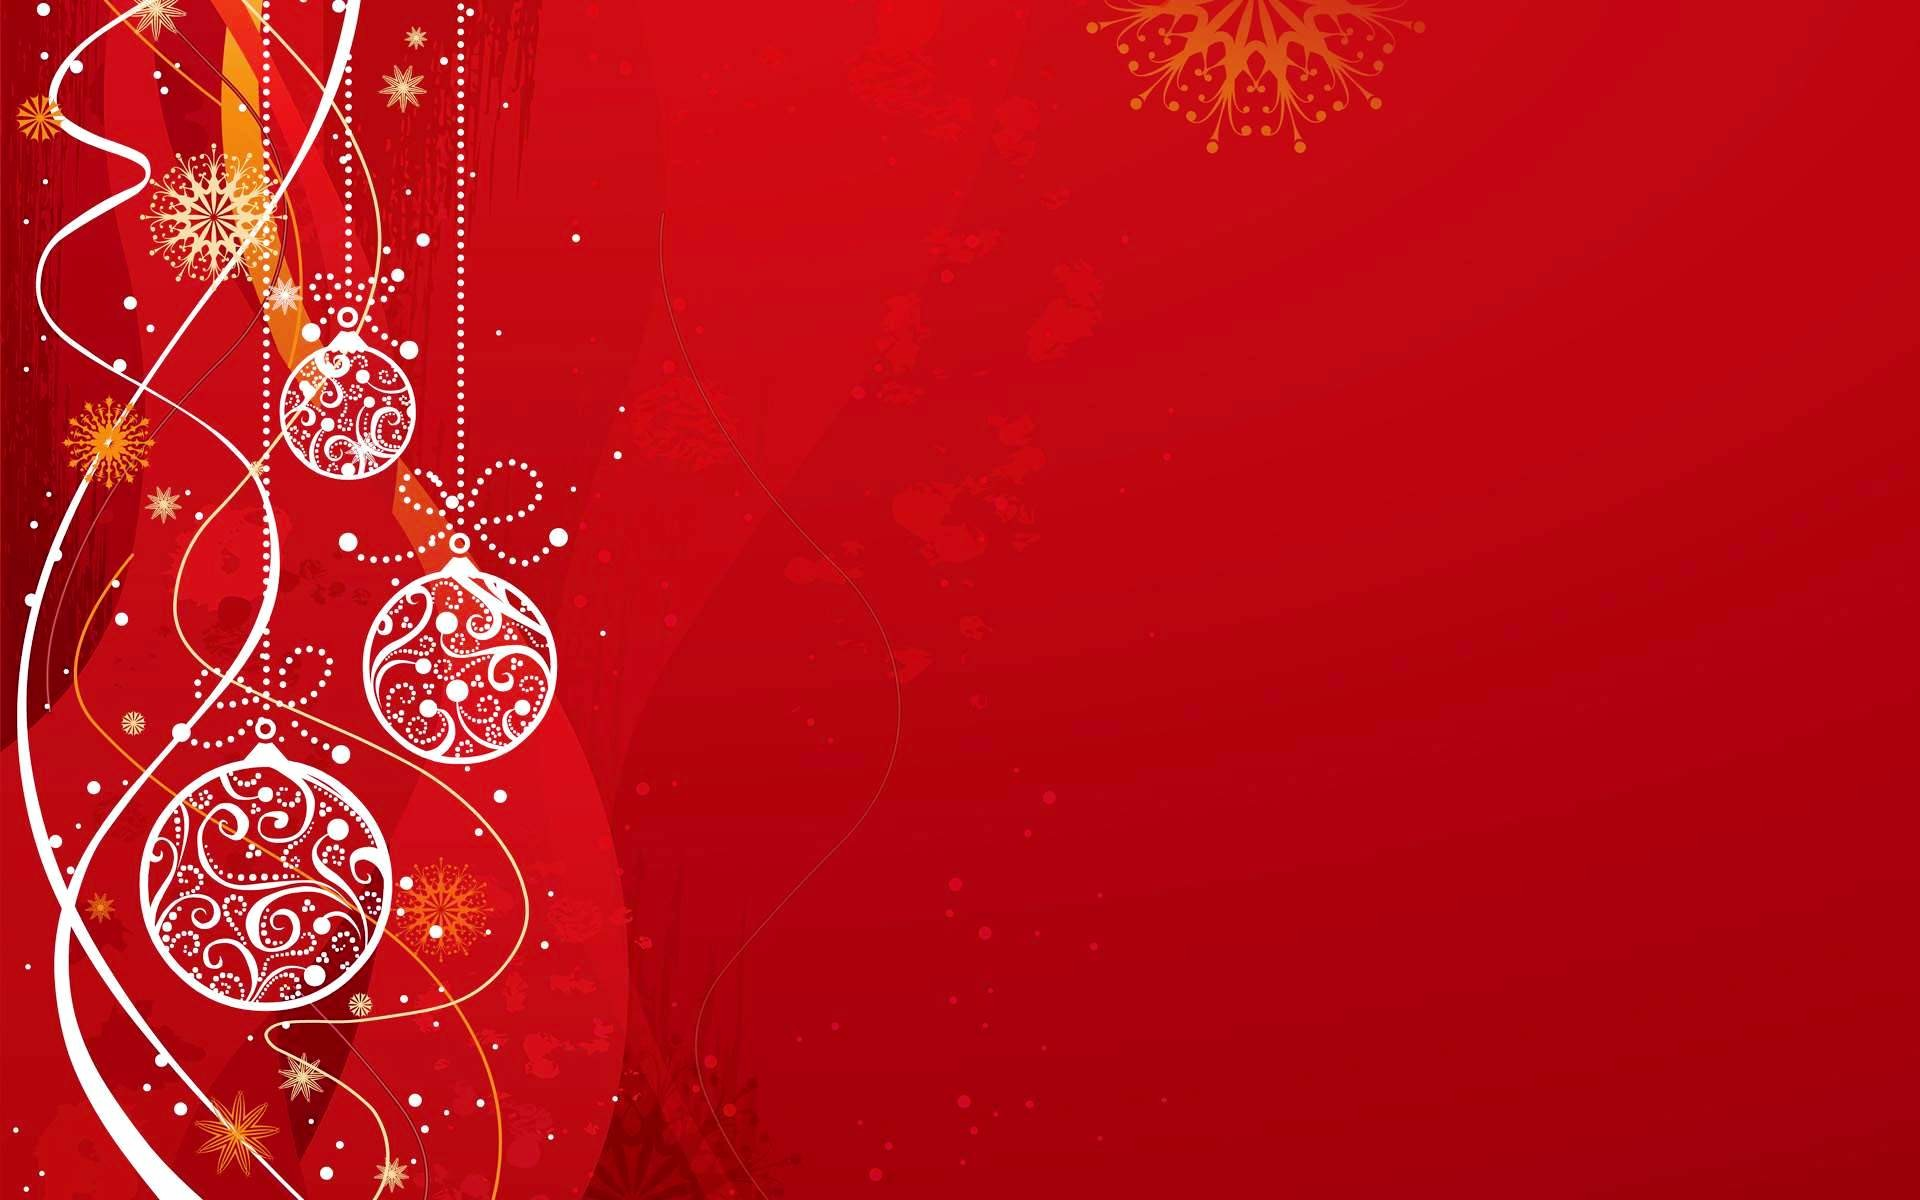 Easy Steps To Find Animated Christmas Wallpapers Free Download : Animated  Christmas Wallpapers Free Download Christmas